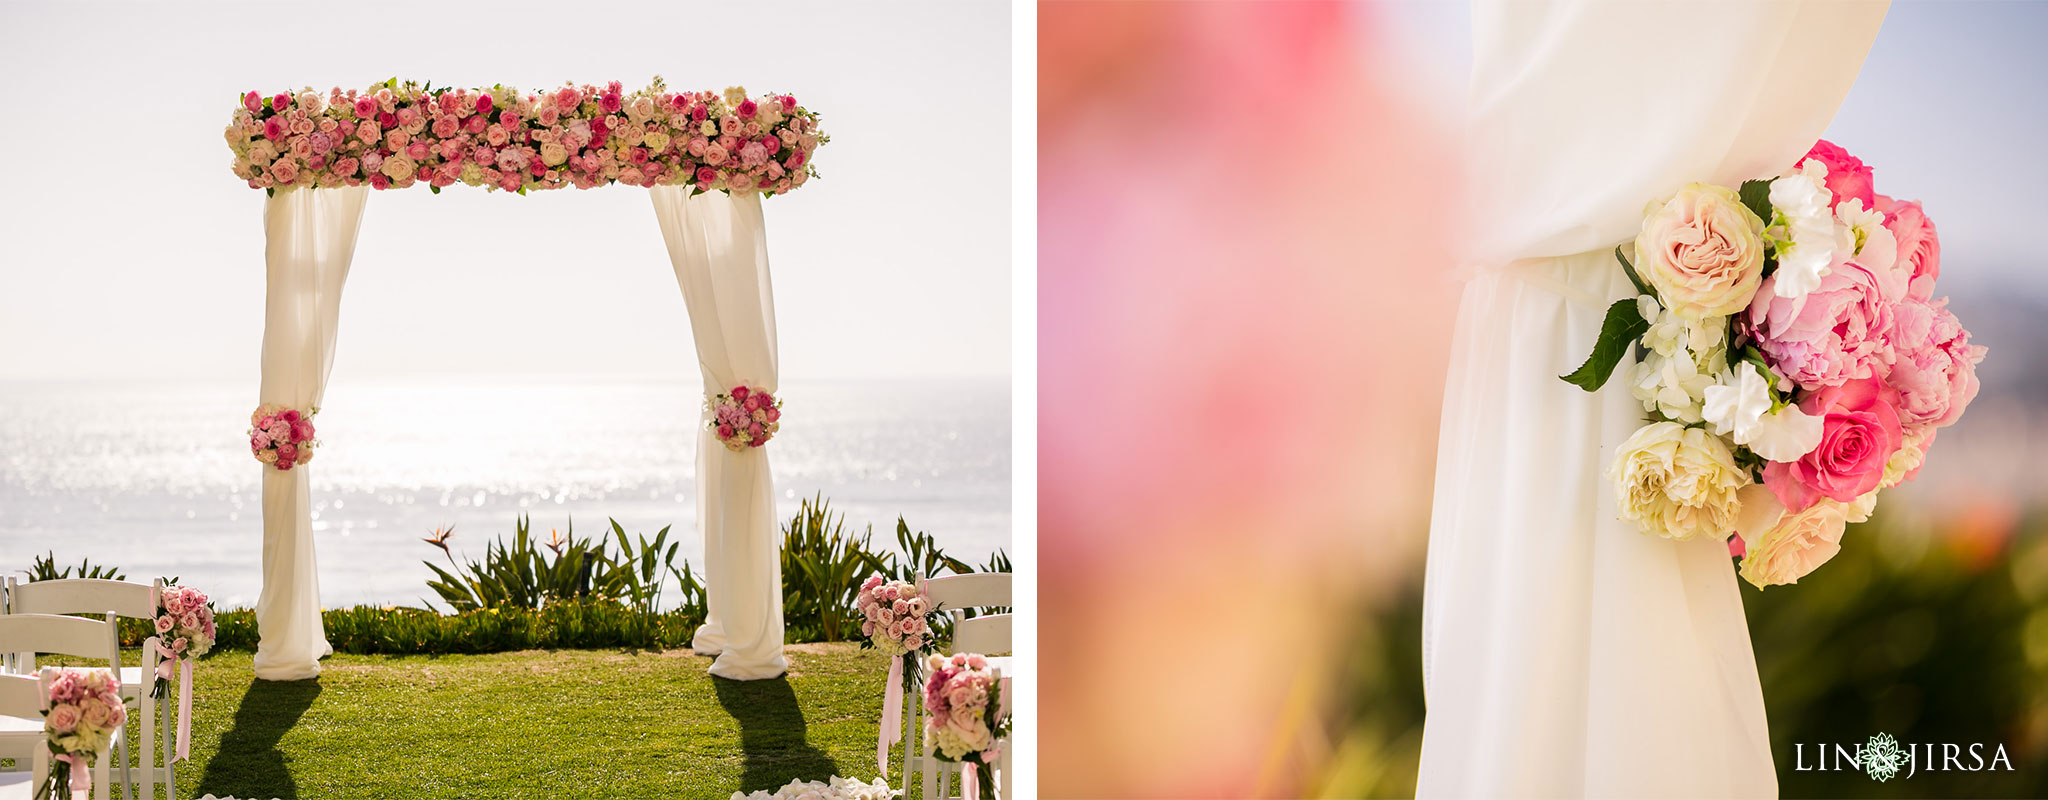 25 ritz carlton dana point wedding ceremony photography